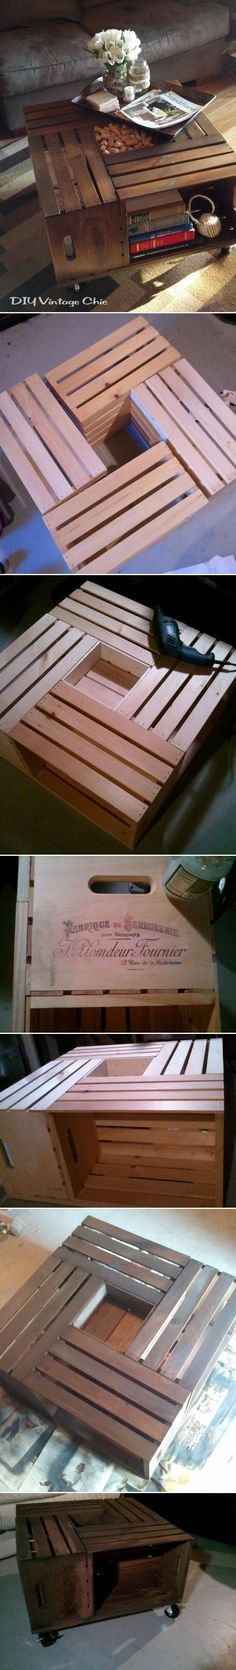 DIY Wine Crate Table crafts craft diy craft easy crafts diy ideas diy crafts do it yourself crafty easy diy diy furniture craft furniture diy table craft decor diy home decorations easy diy craft ideas diy tutorials. No need for wheels. Home Projects, Home Crafts, Diy Crafts, Crate Crafts, Crate Decor, Wine Crate Table, Wine Crates, Wooden Crates, Wooden Boxes